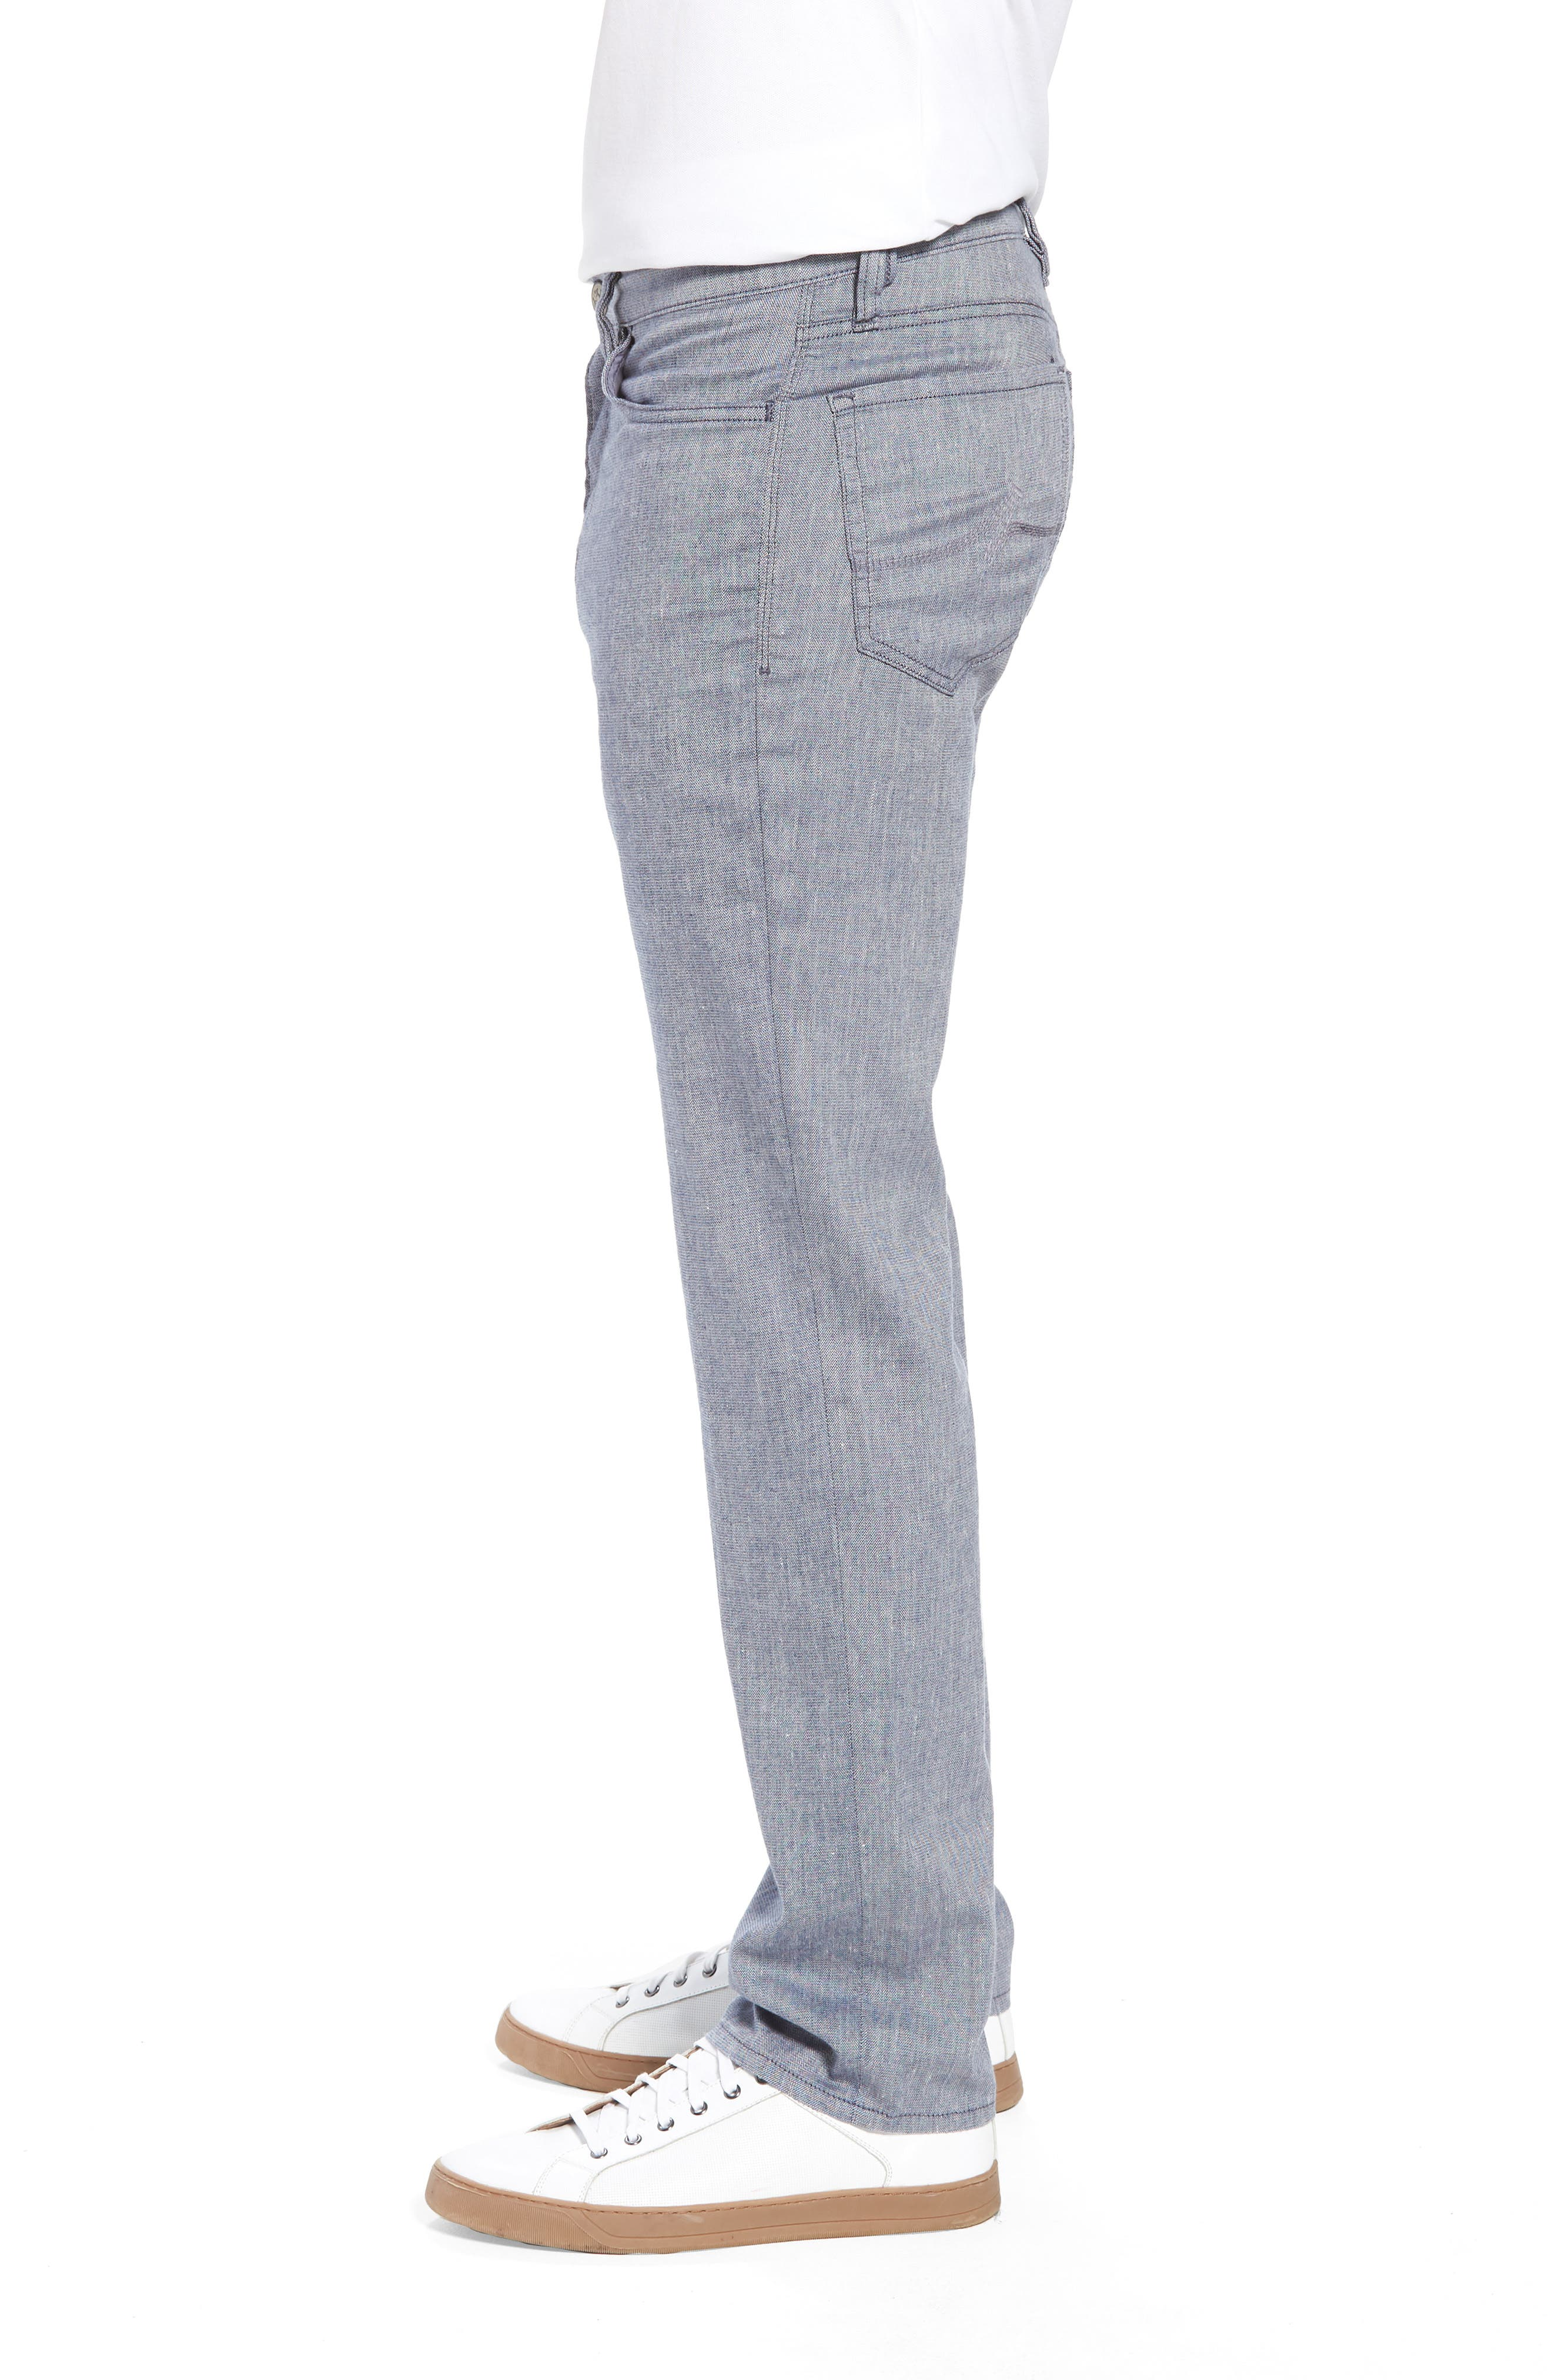 Charisma Relaxed Fit Pants,                             Alternate thumbnail 3, color,                             INDIGO TEXTURED